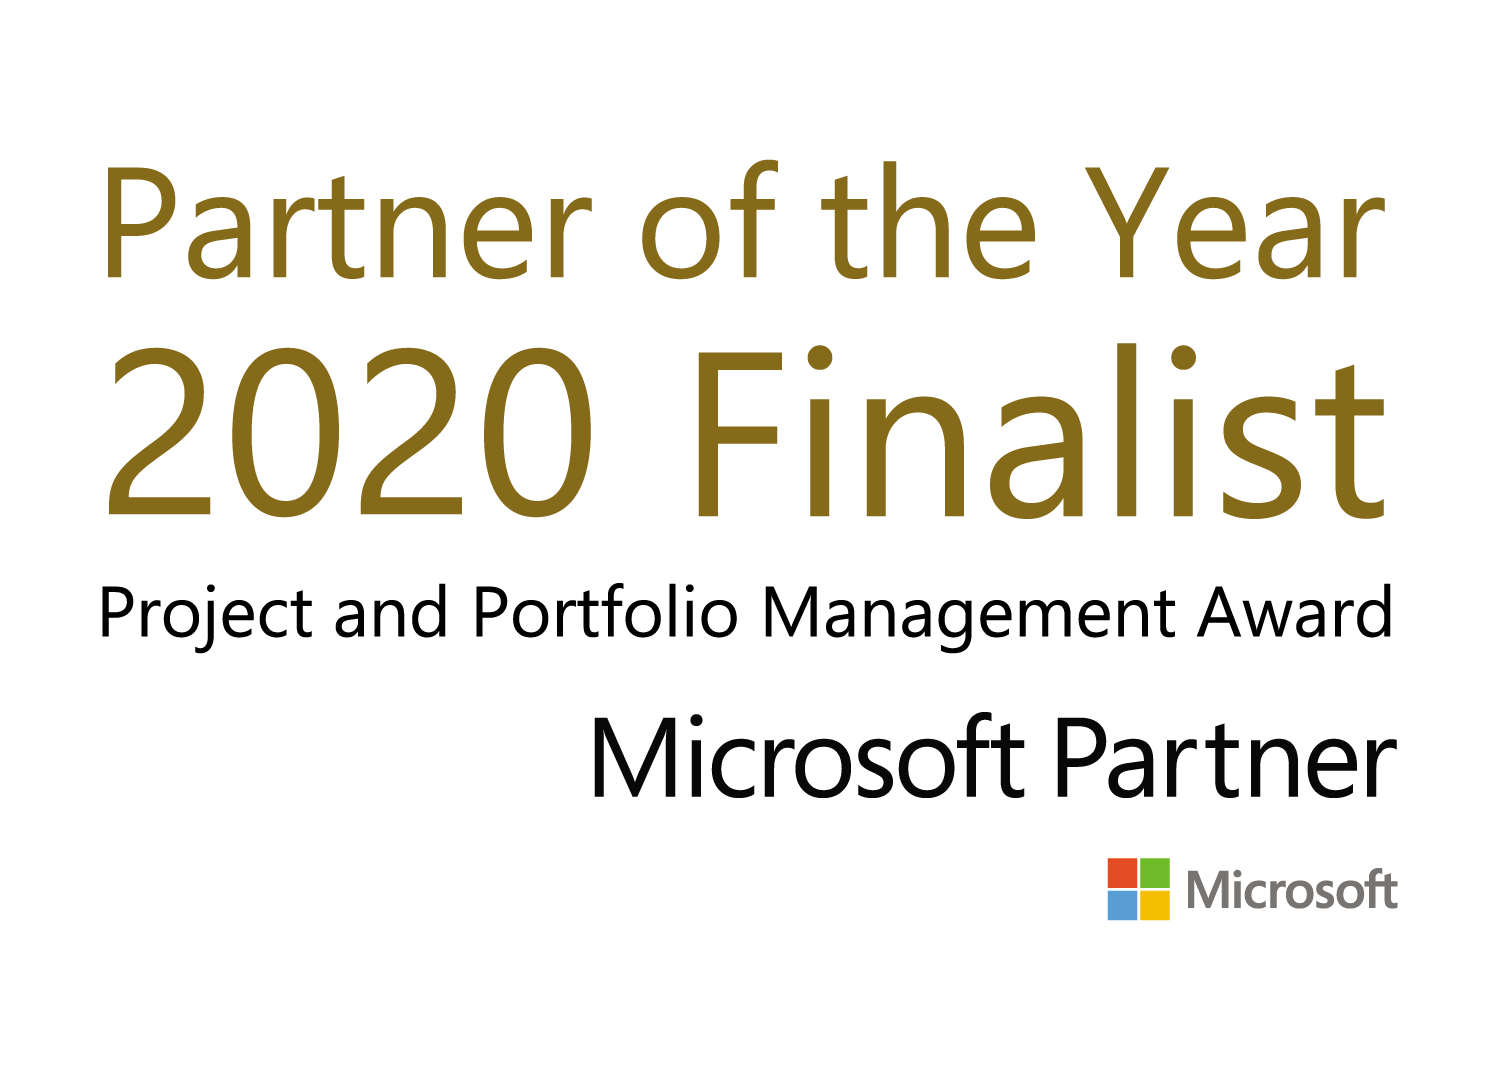 Microsoft Partner of the year Finalist 2020